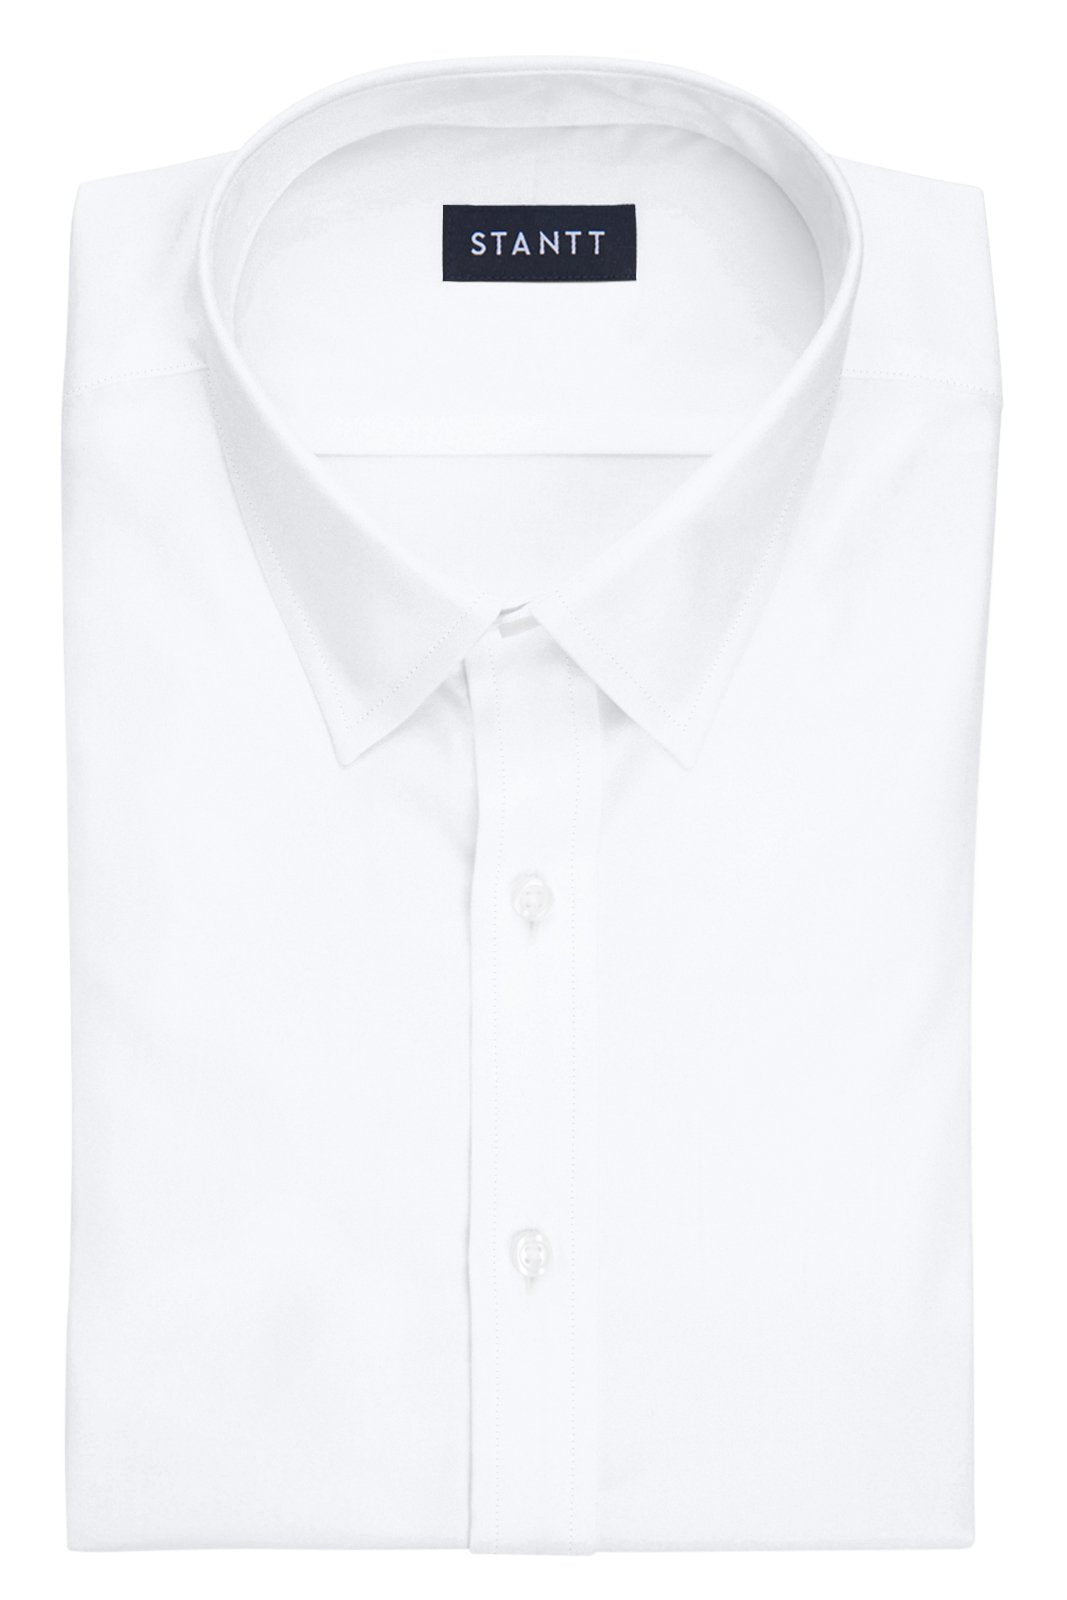 Fine White Poplin: Semi-Spread Collar, French Cuff